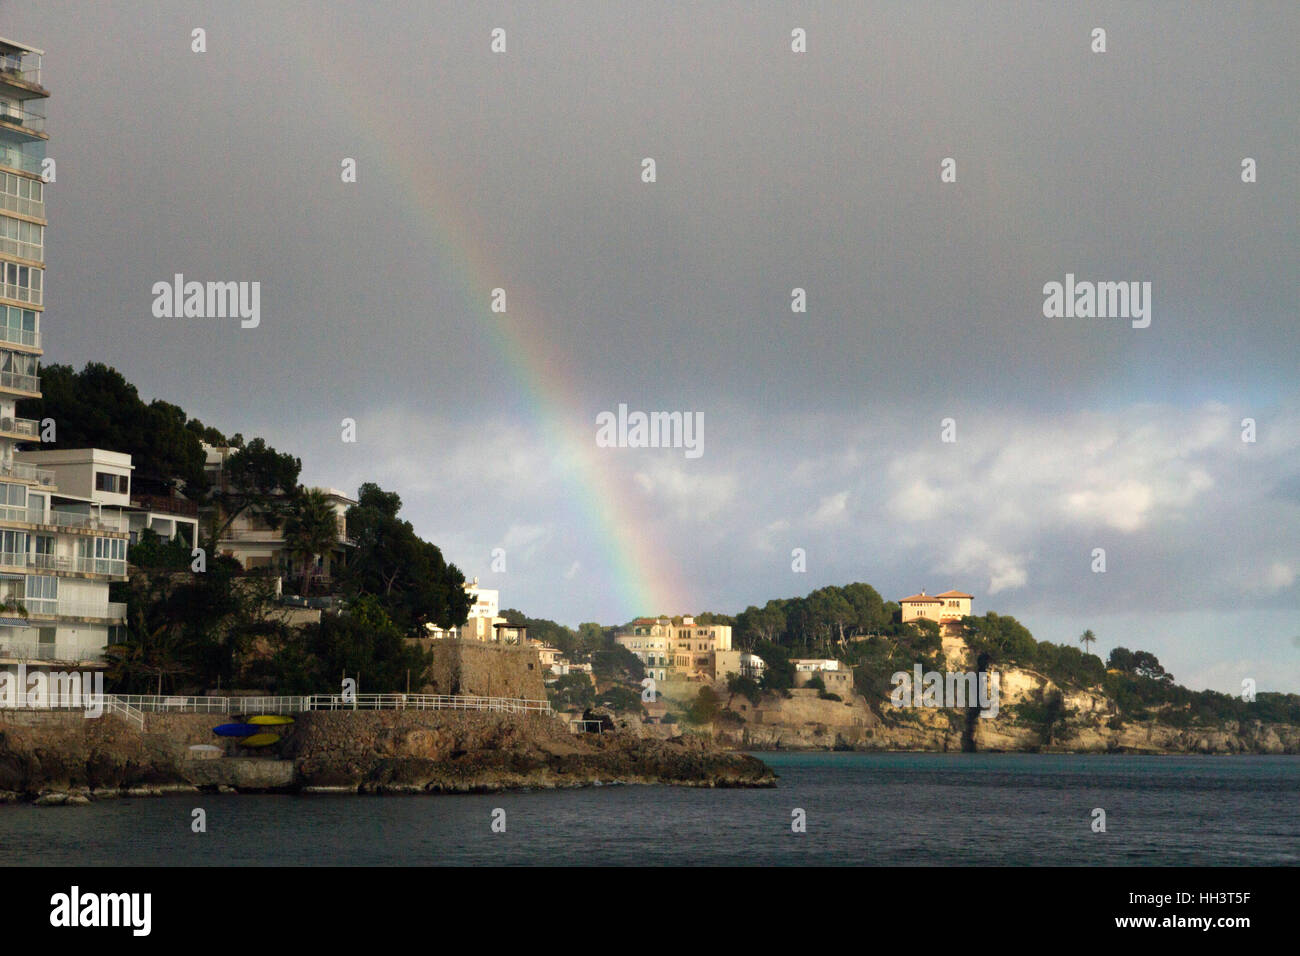 Rainbow over cloudy sky seascape Mallorca Spain - Stock Image